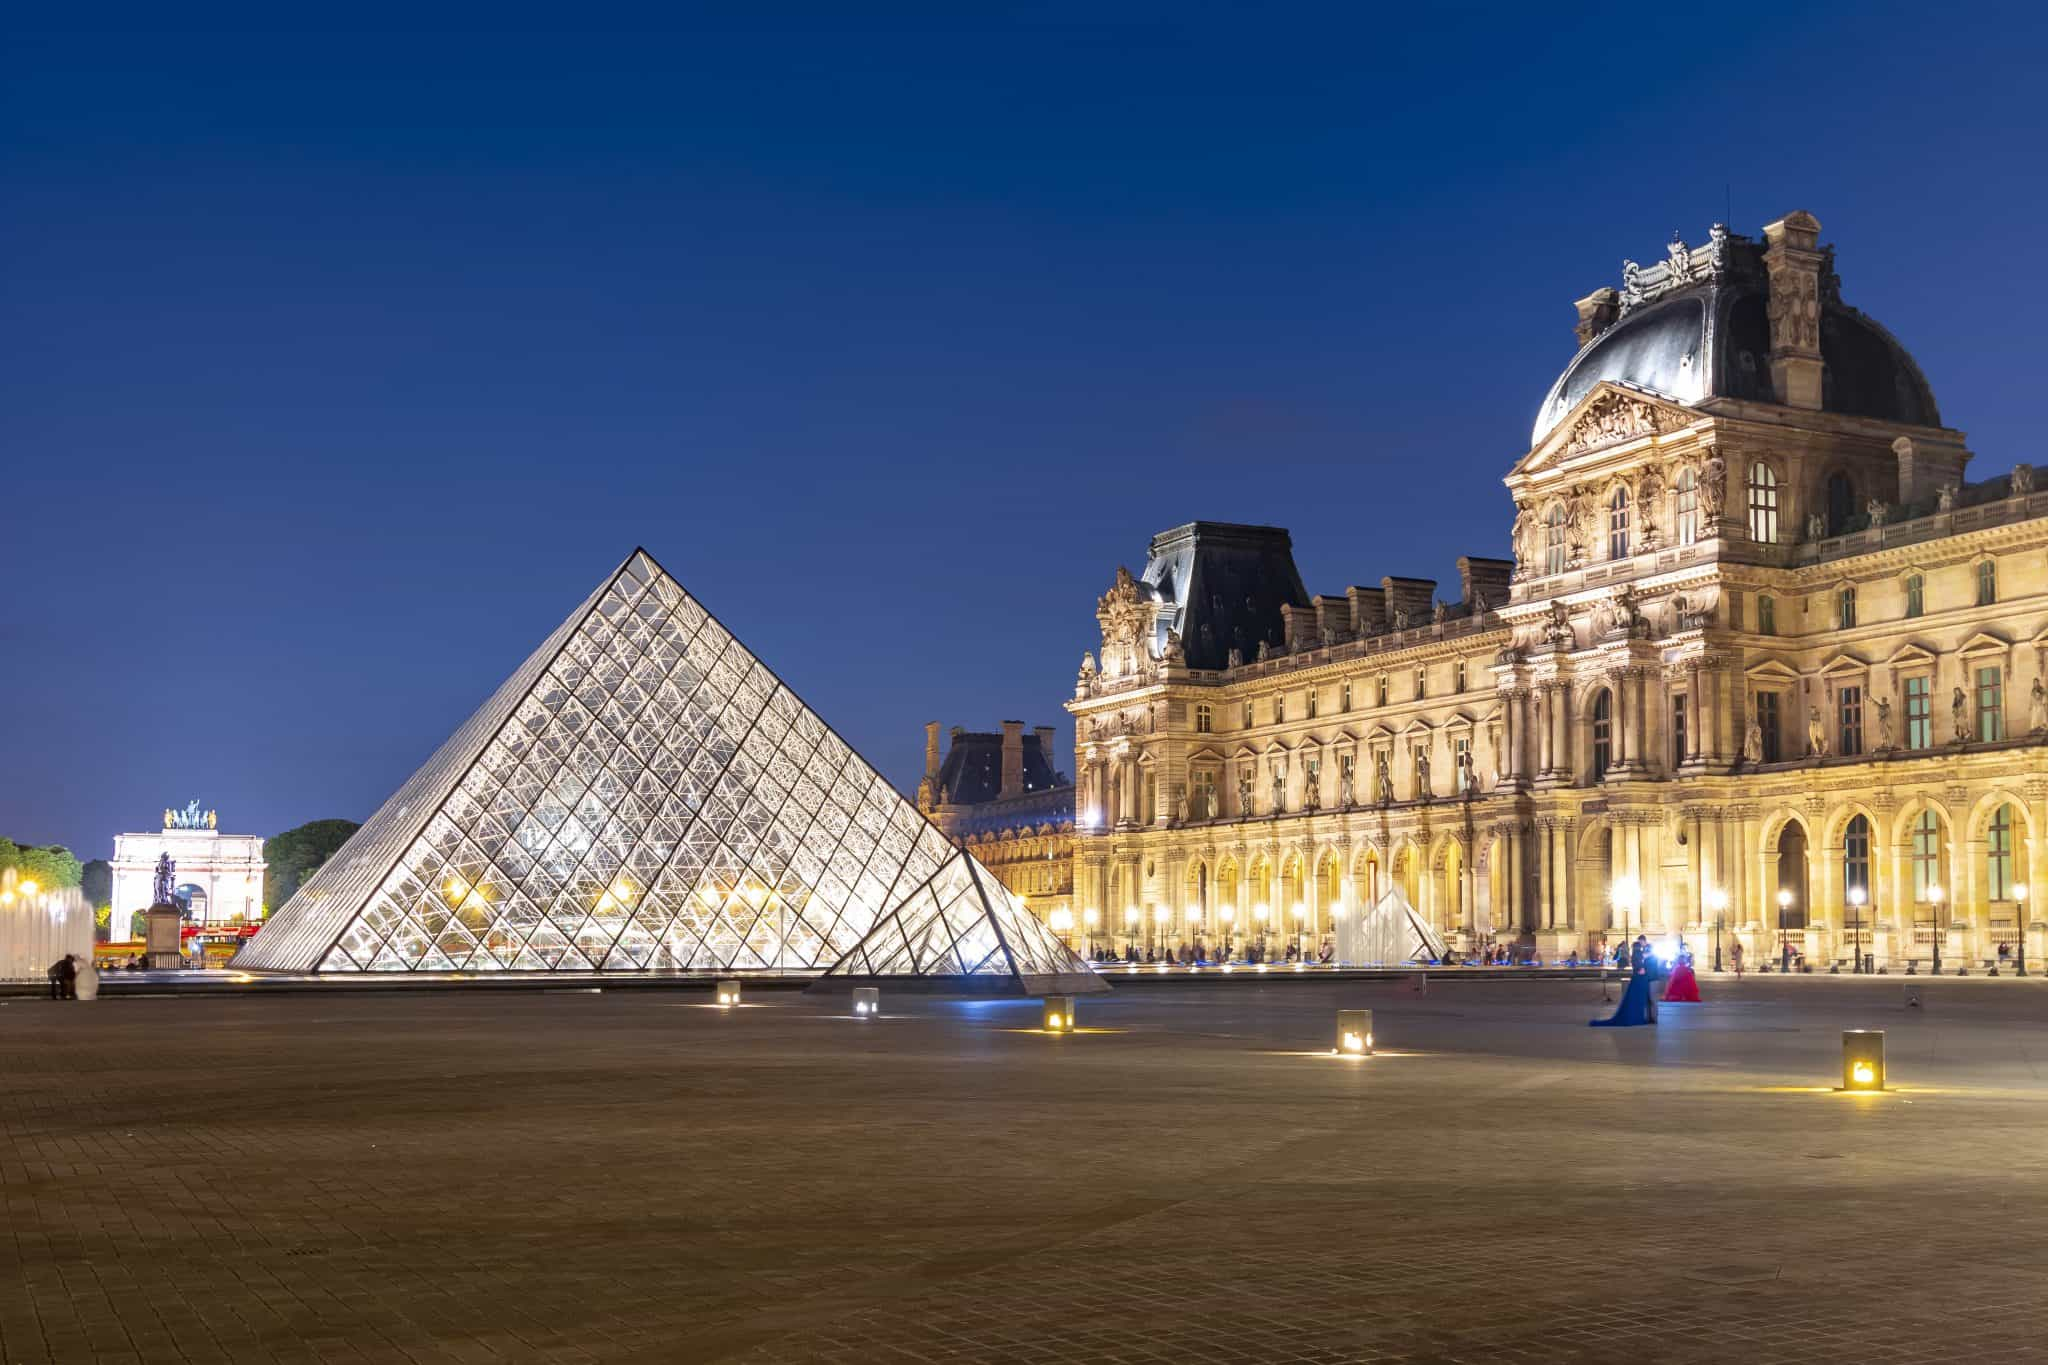 The Pyramid at the Louvre at Night - where to go in Paris for 4 days